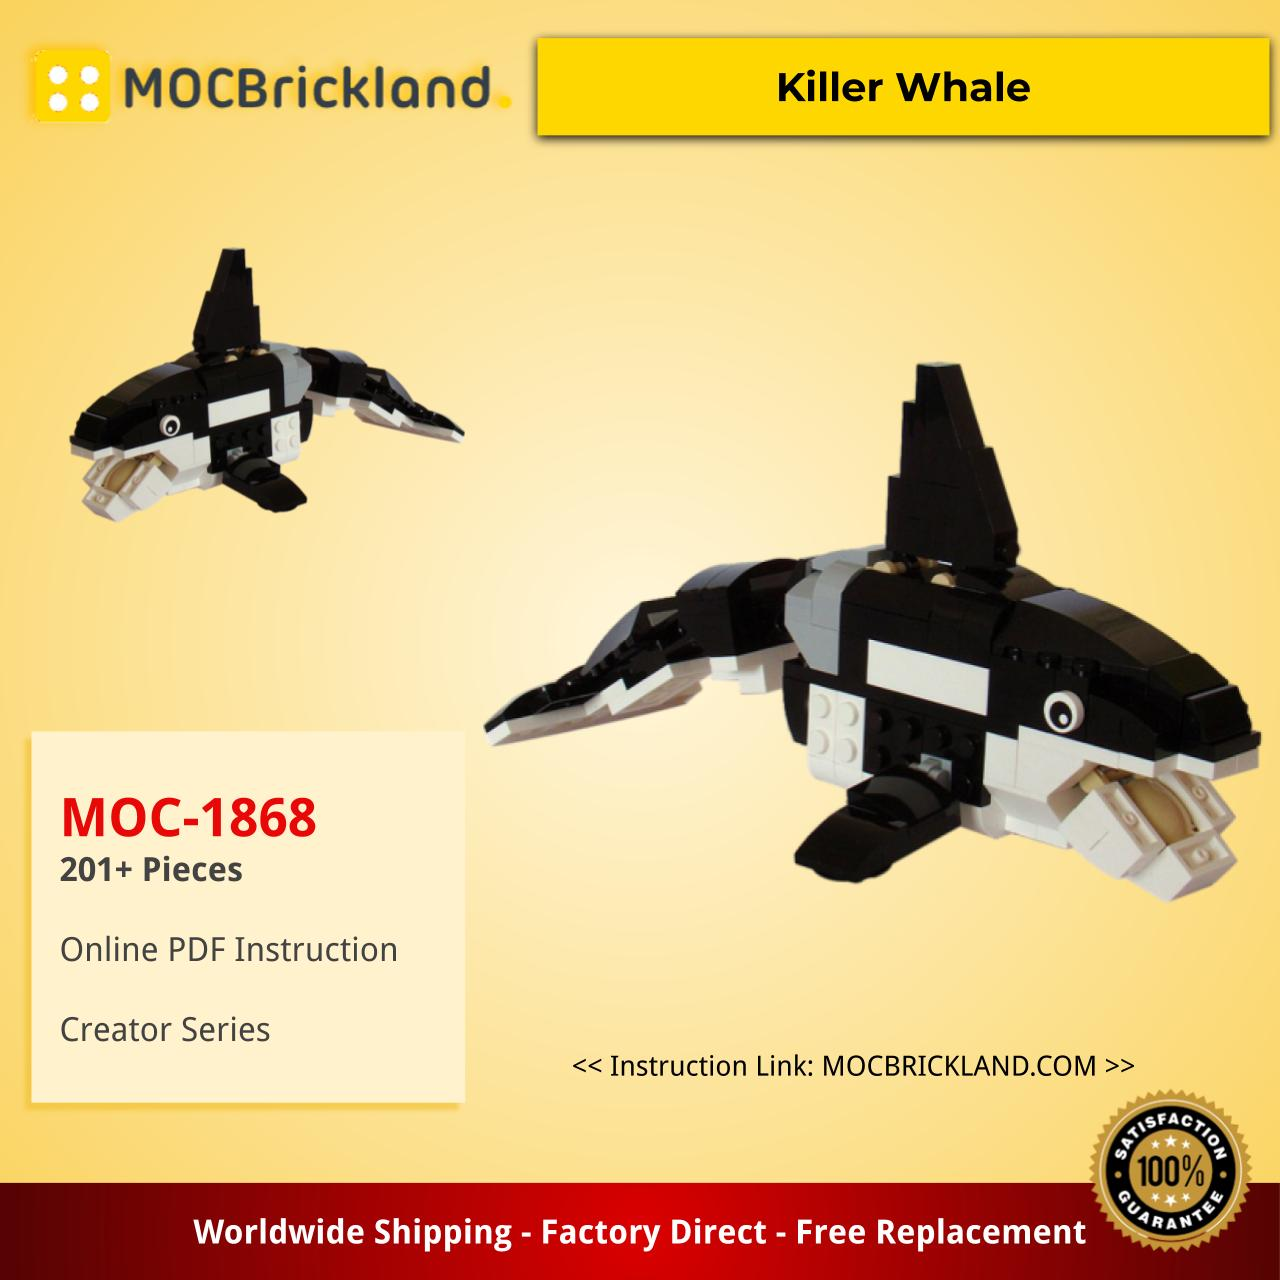 Creator MOC-1868 31021: Killer Whale by Tomik MOCBRICKLAND